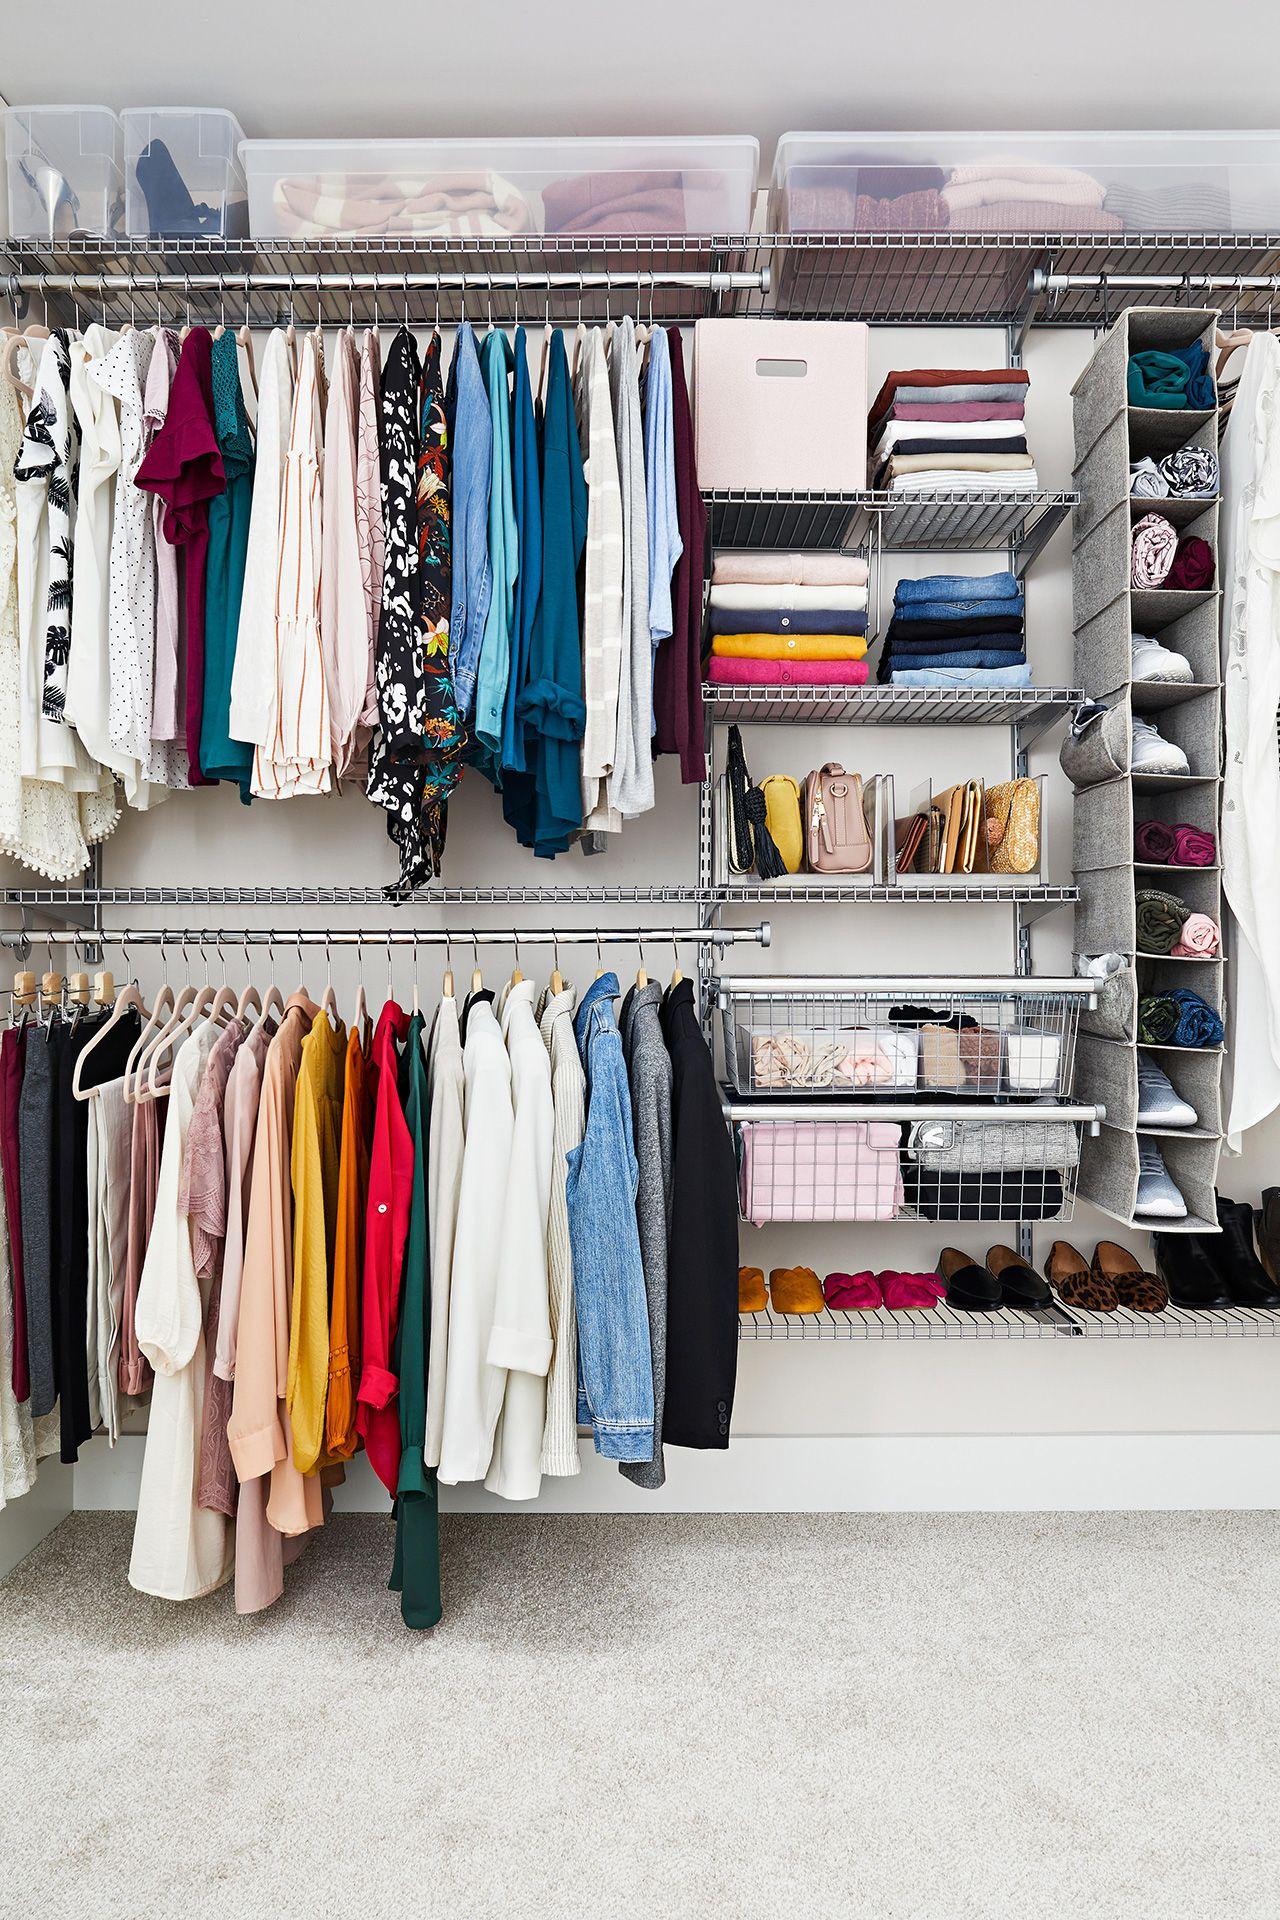 31 Organizing Tips To Steal For Your Closet Closet Clothes Storage Organizing Walk In Closet Storage Closet Organization